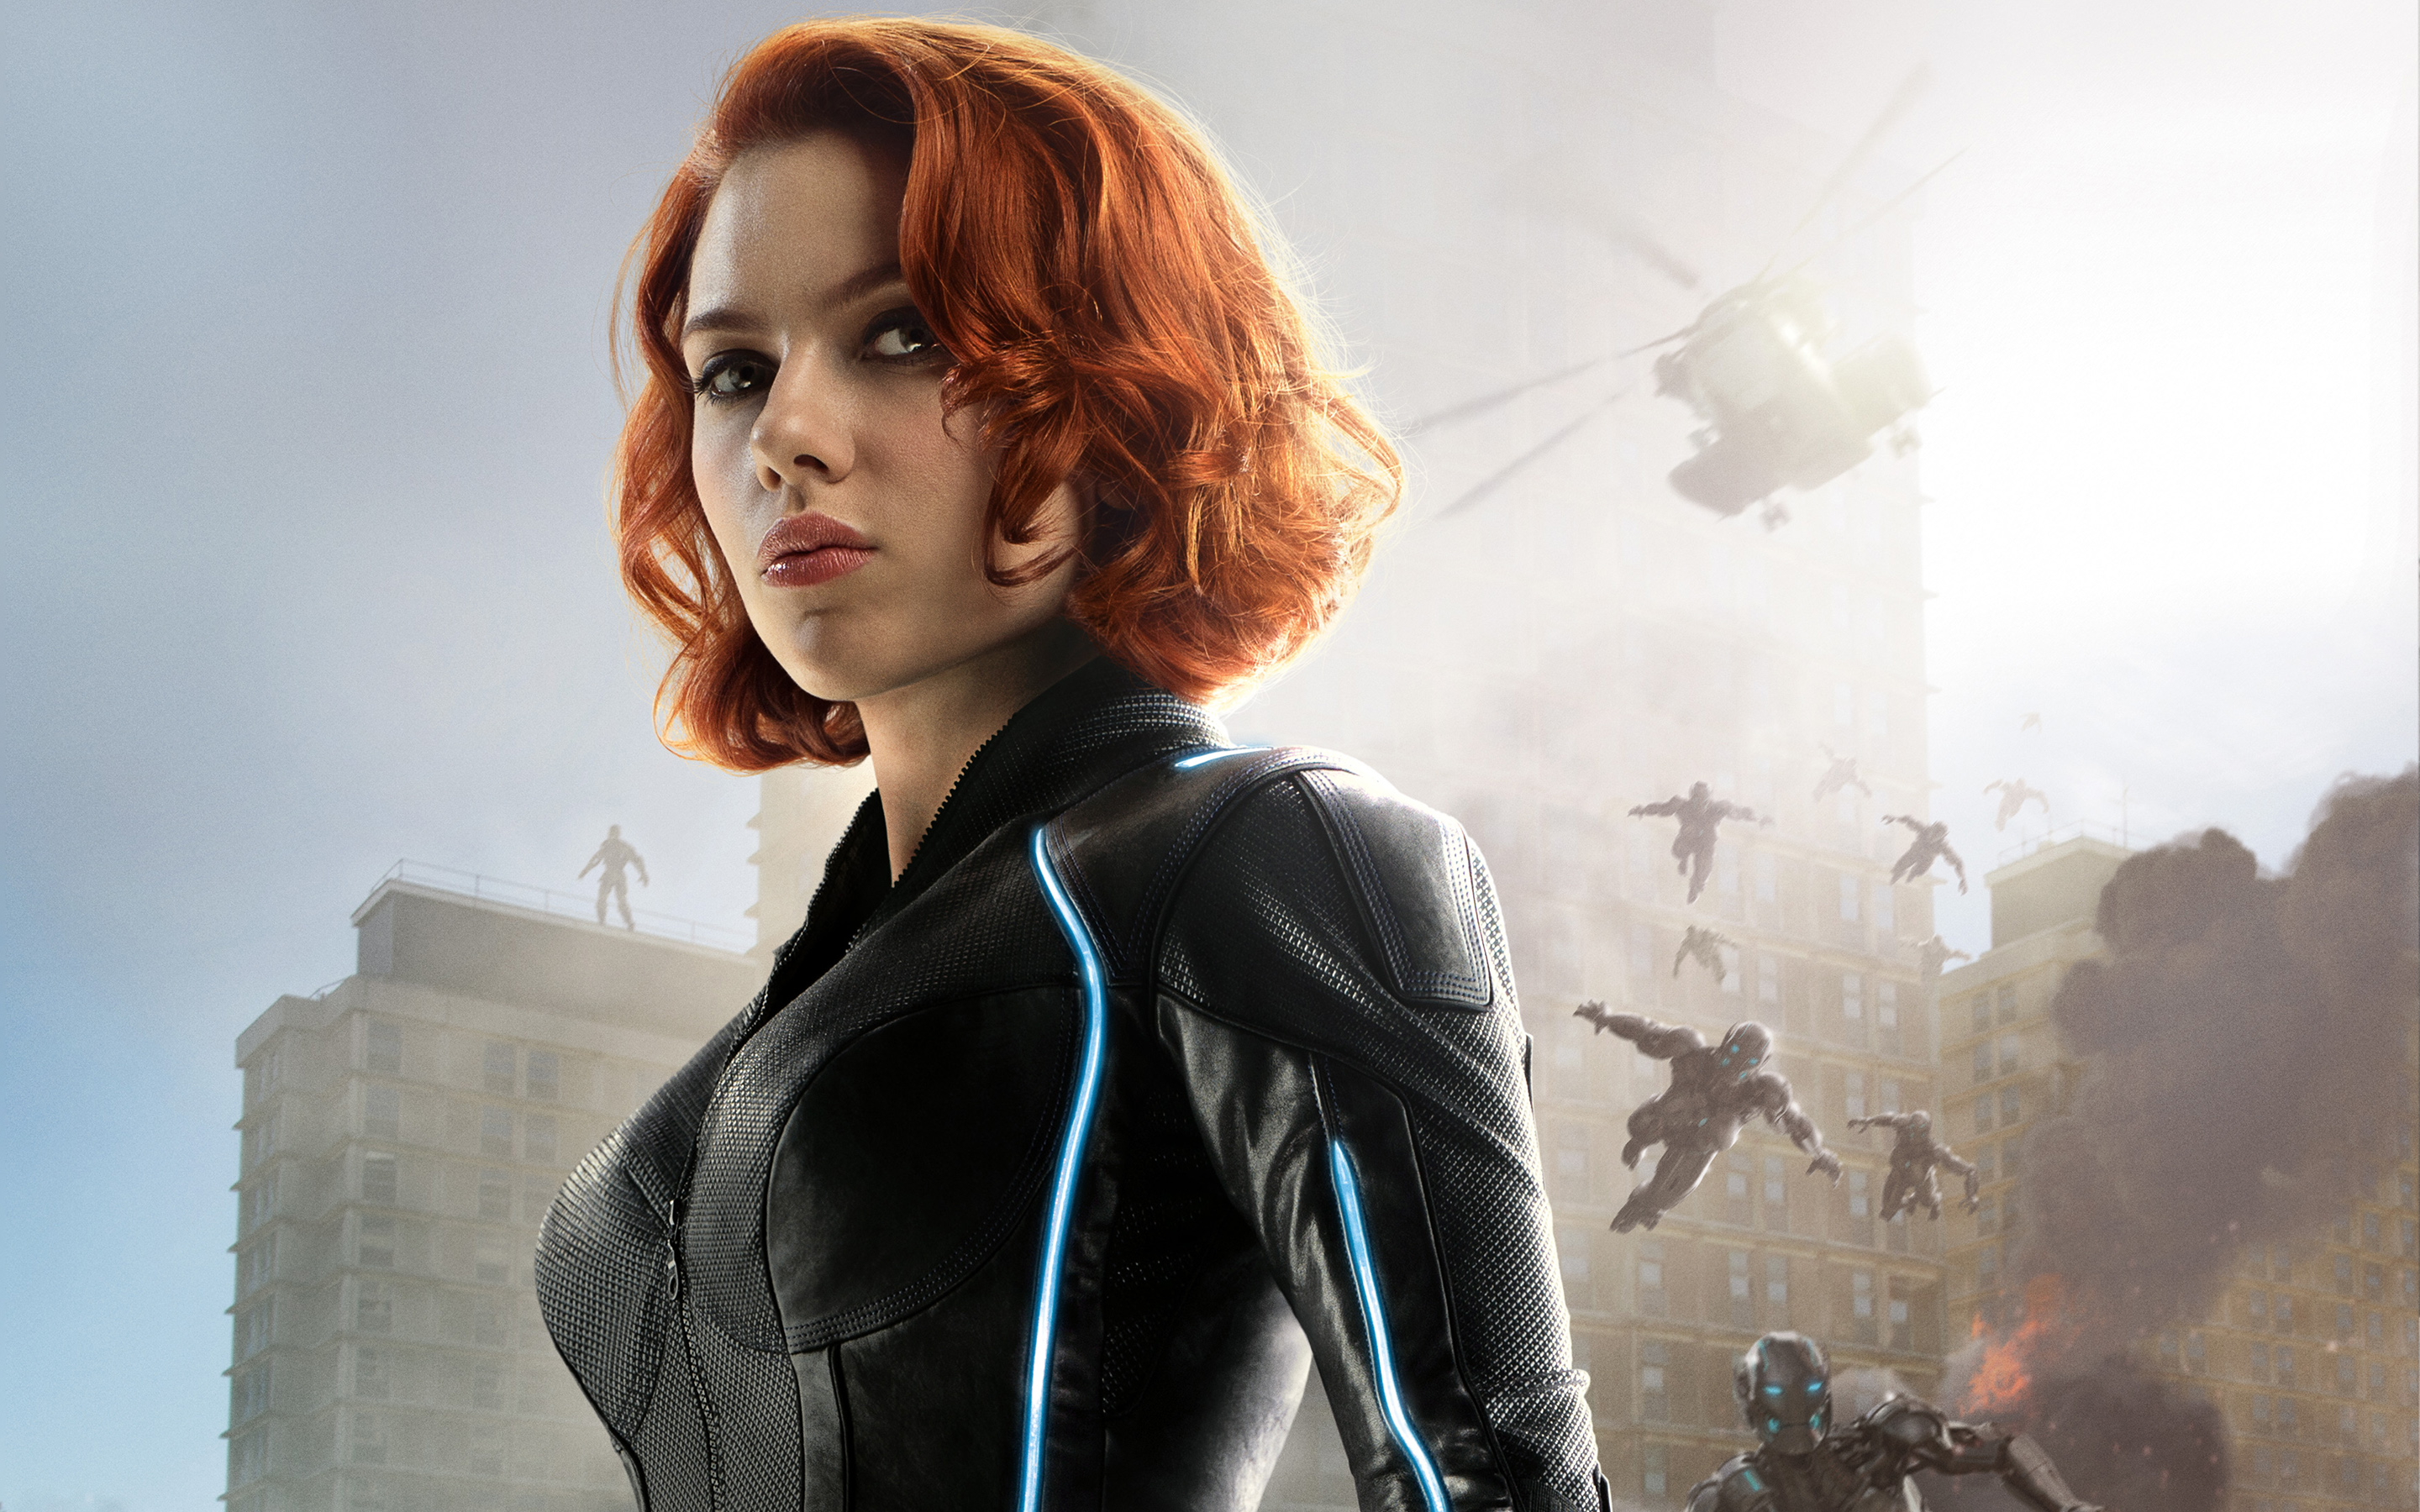 What Should The Big Idea Of The Black Widow Movie Be